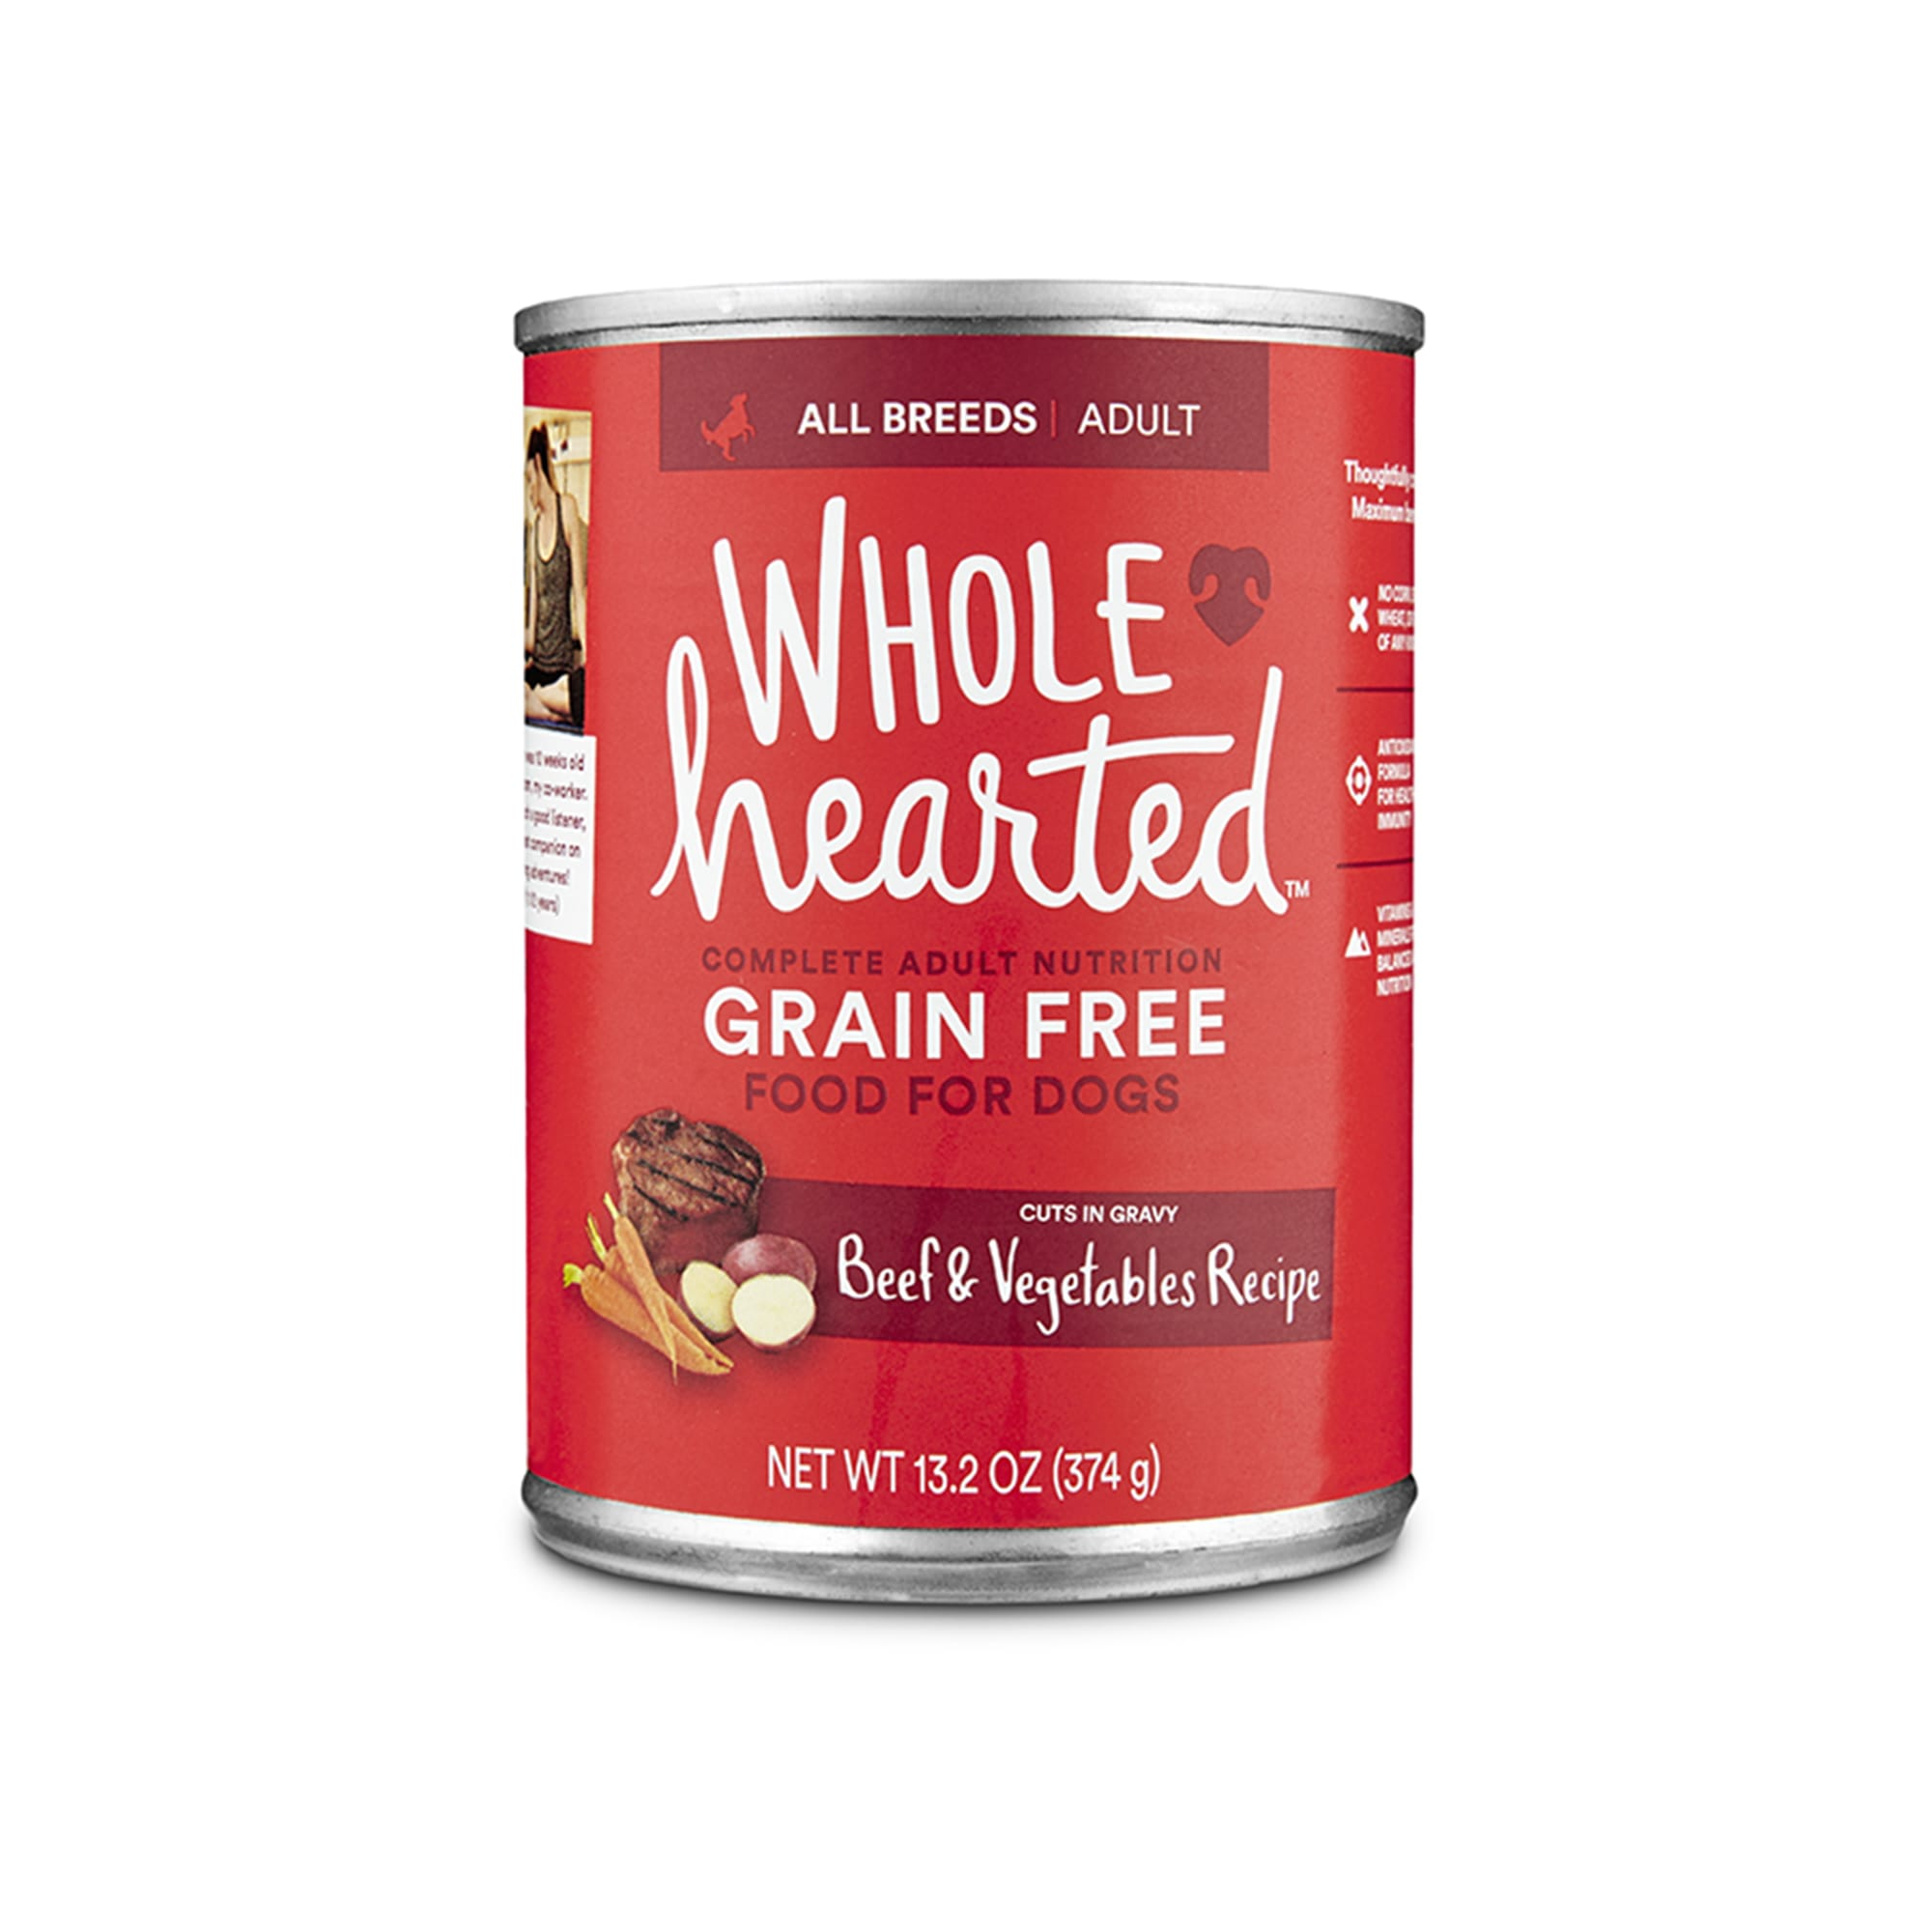 WholeHearted Grain Free Adult Beef and Vegetable Recipe Wet Dog Food, 13.2 oz., Case of 12